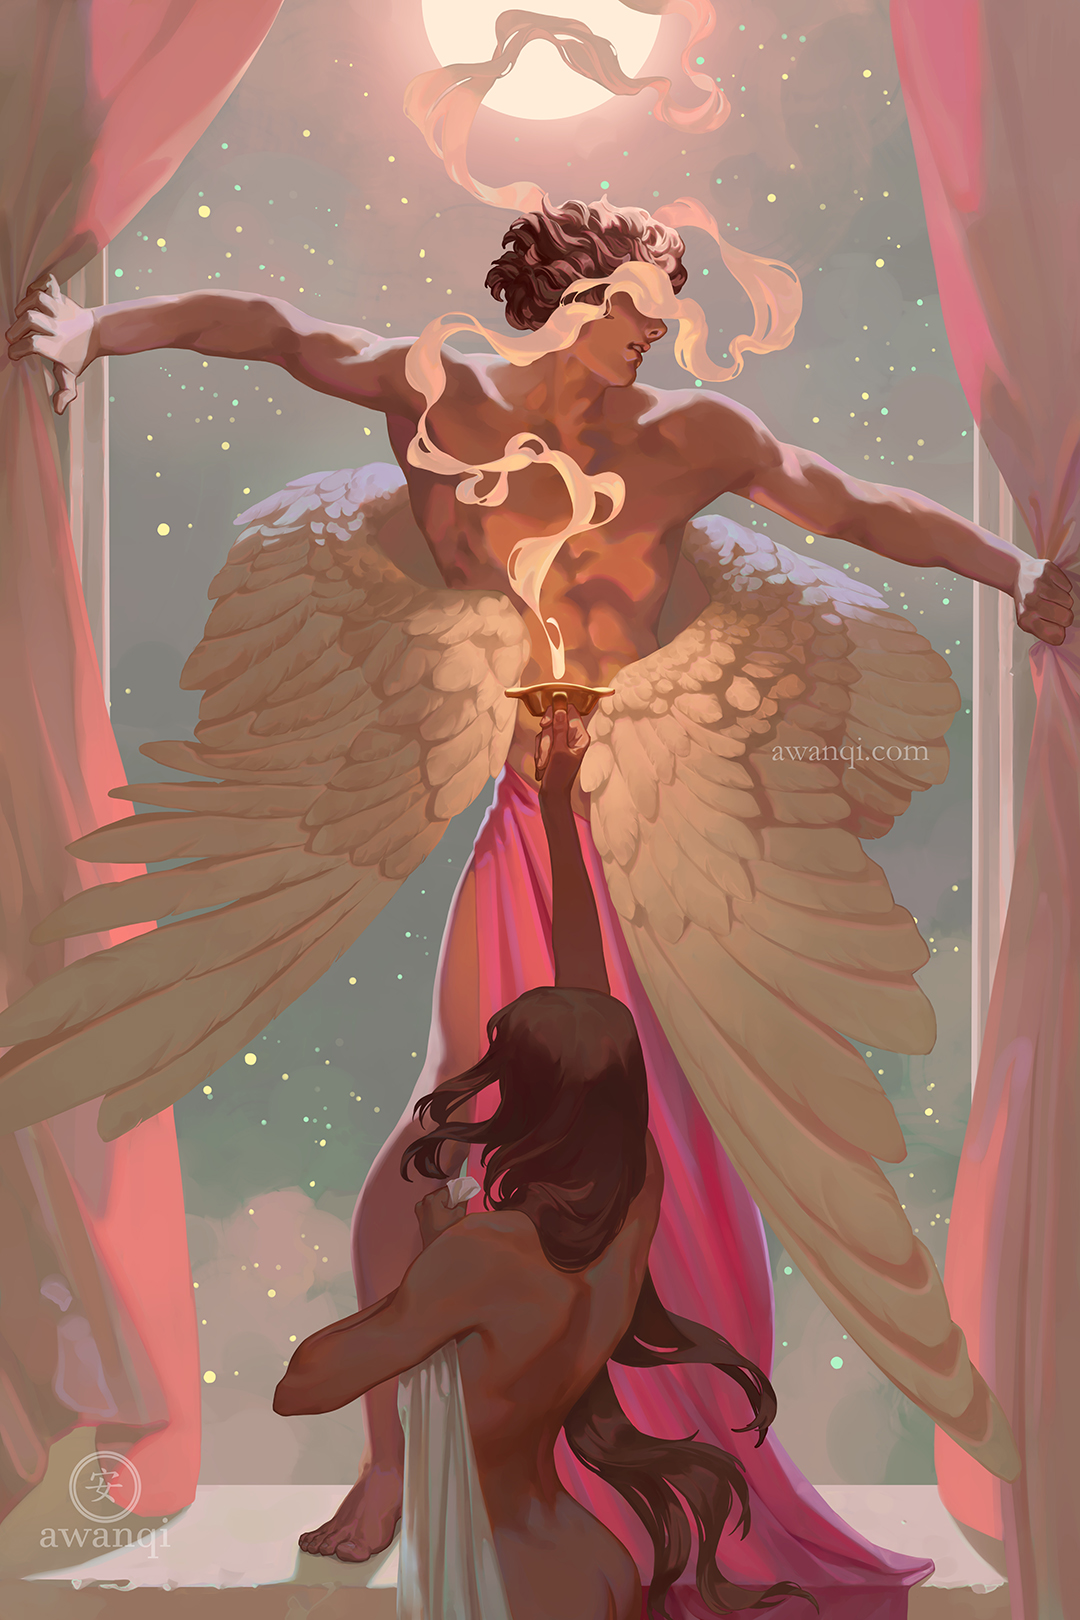 Girlsclubasia-Artist-Illustrator-Angela Wang-eros and psyche for internet